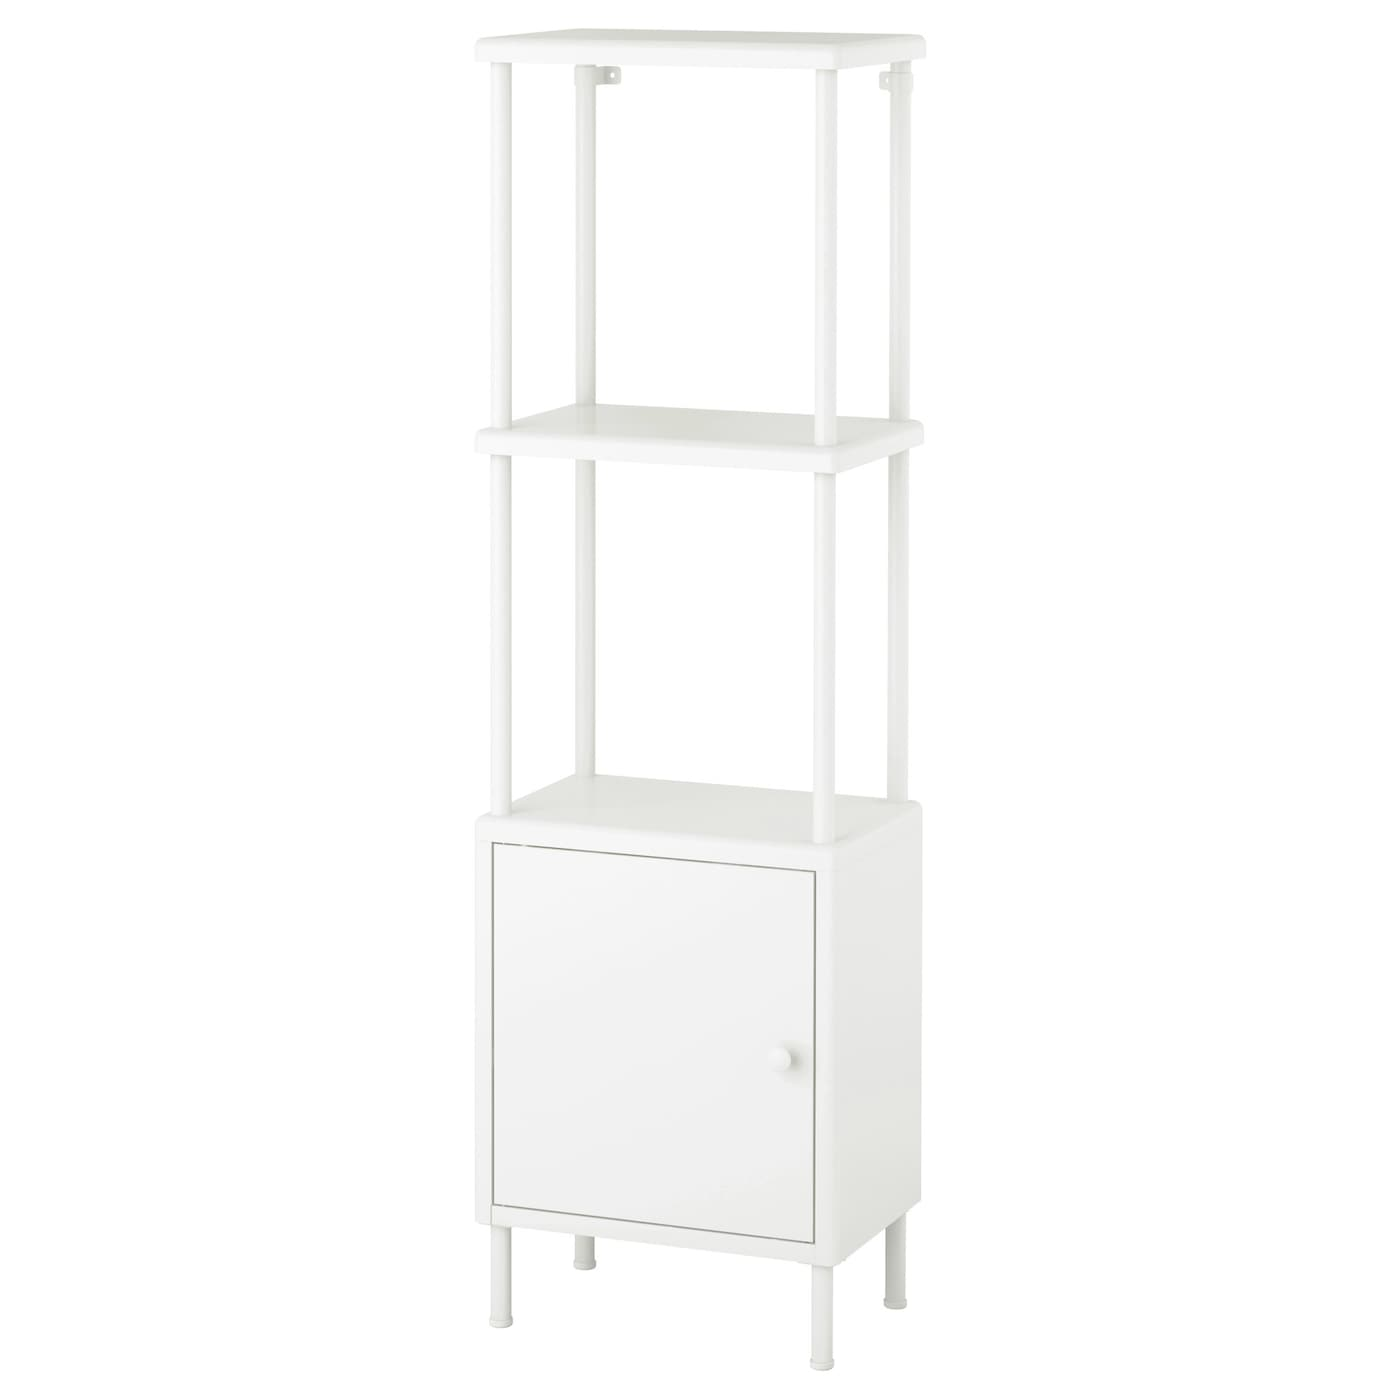 over shelves the choose toilet bathroom storage ladder color shelf pin